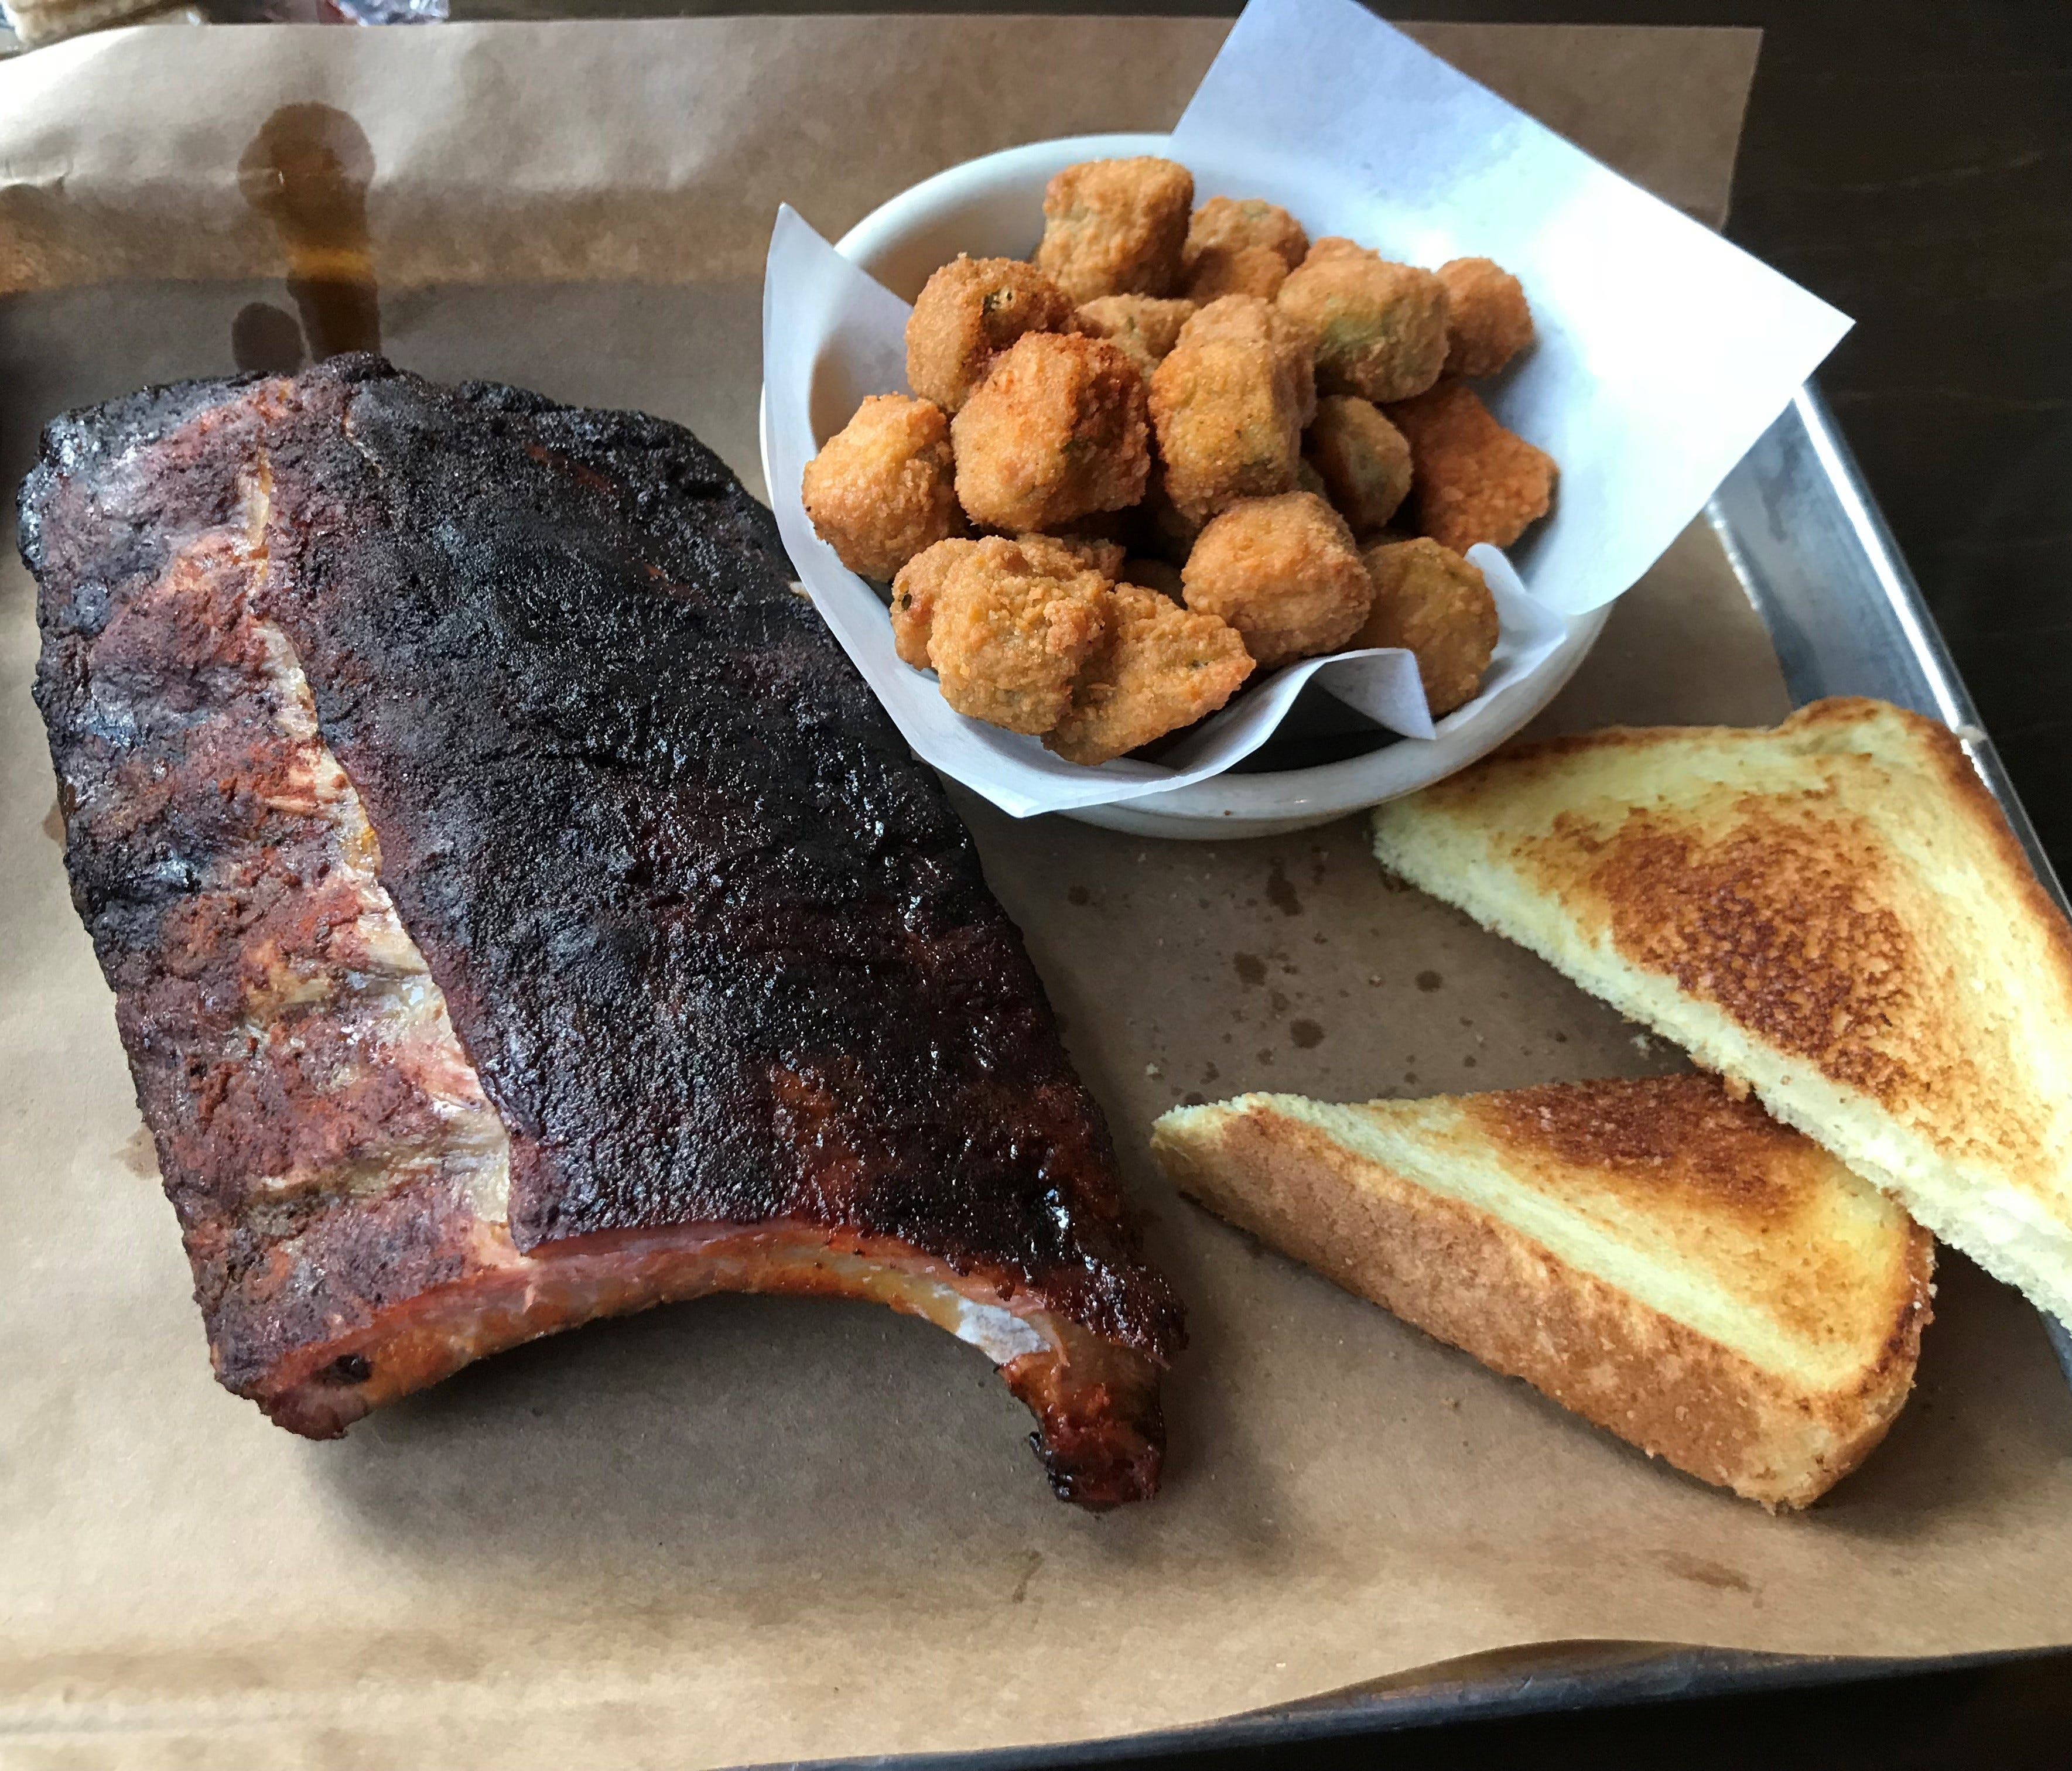 Doc Crow's has a full barbecue smoker operation that churns out specialties like St. Louis-style pork ribs, served with fried okra and white bread.